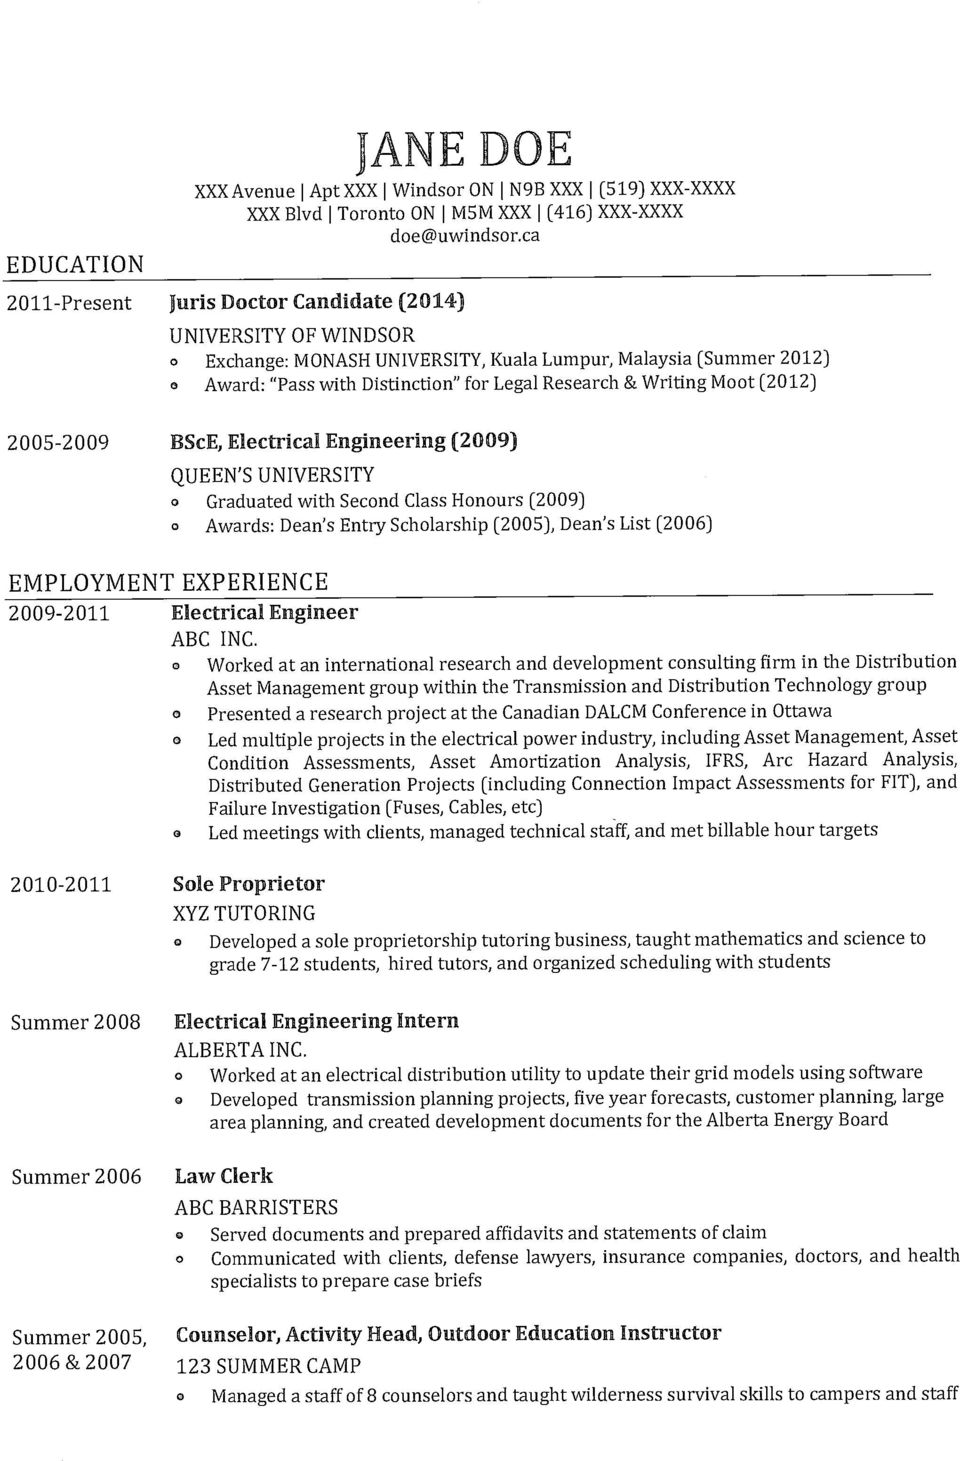 2005-2009 BScE, Electrical Engineering (2009) QUEEN'S UNIVERSITY Graduated with Secnd Class Hnurs (2009) O Awards: Dean's Entry Schlarship (2005), Dean's List (2006) EMPLOYMENT EXPERIENCE 2009-2011